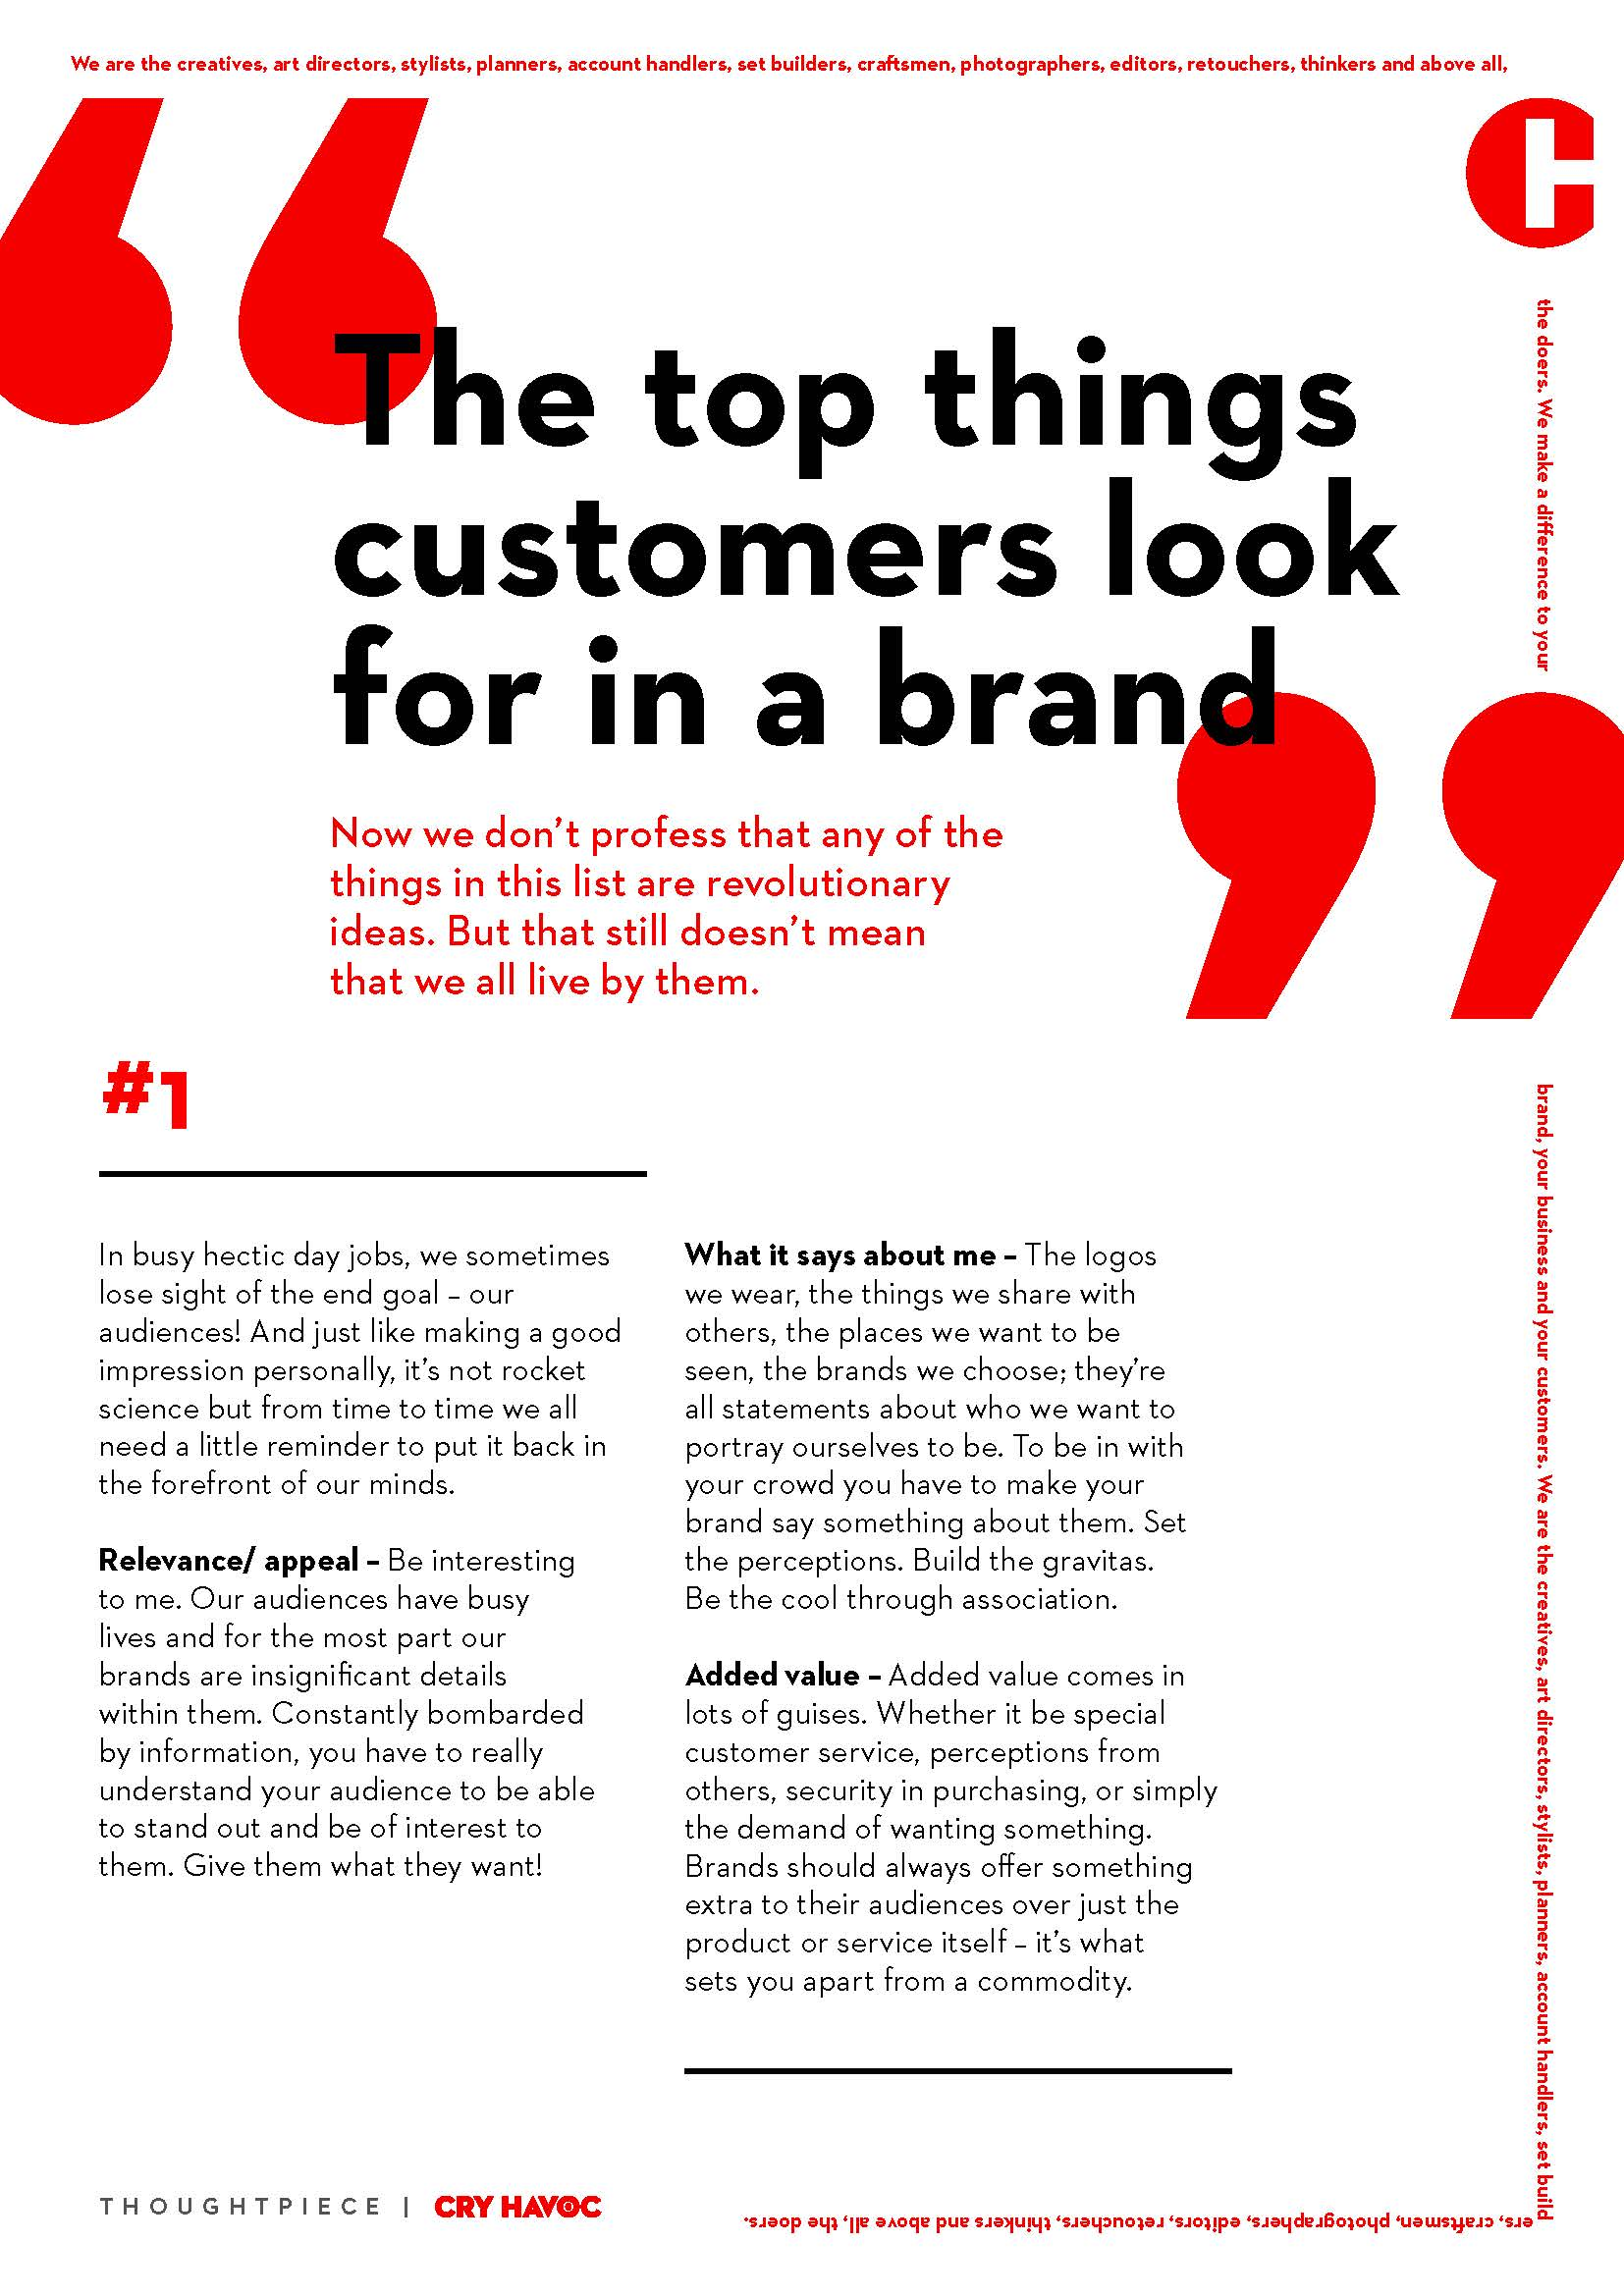 CH_The top things customers look for in a brand_Page_1.jpg